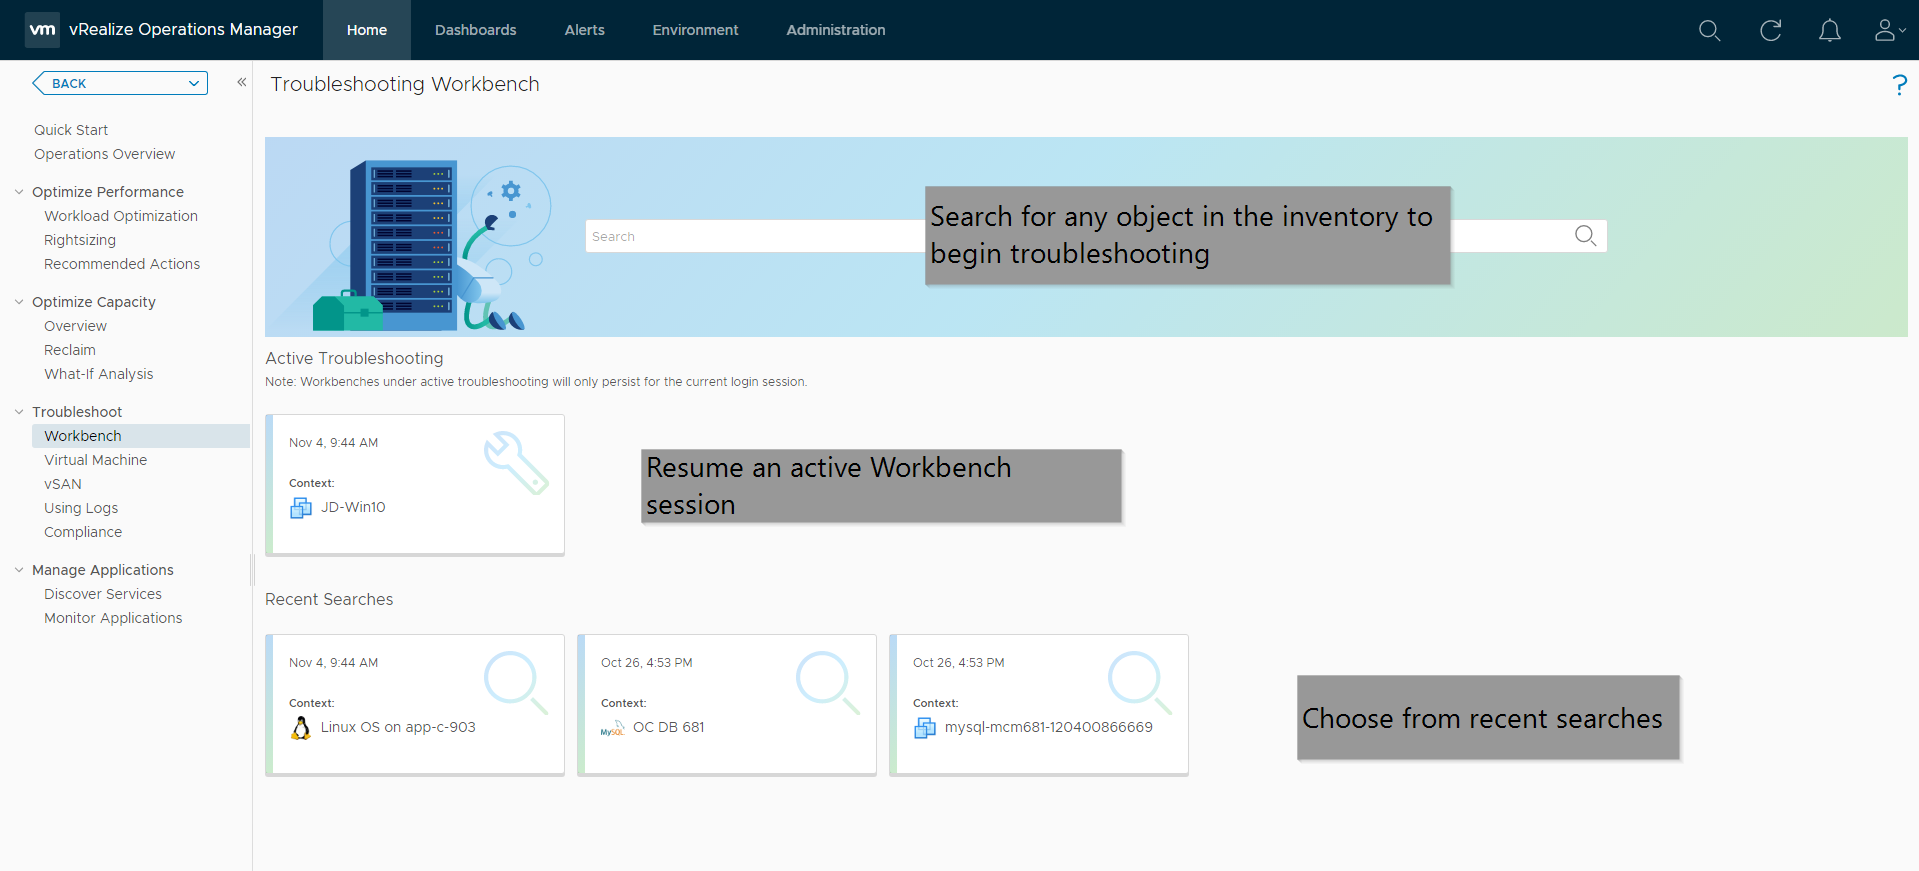 The Troubleshooting Workbench landing page where you can start new workbenches, resume active troubleshooting or leverage recent searches